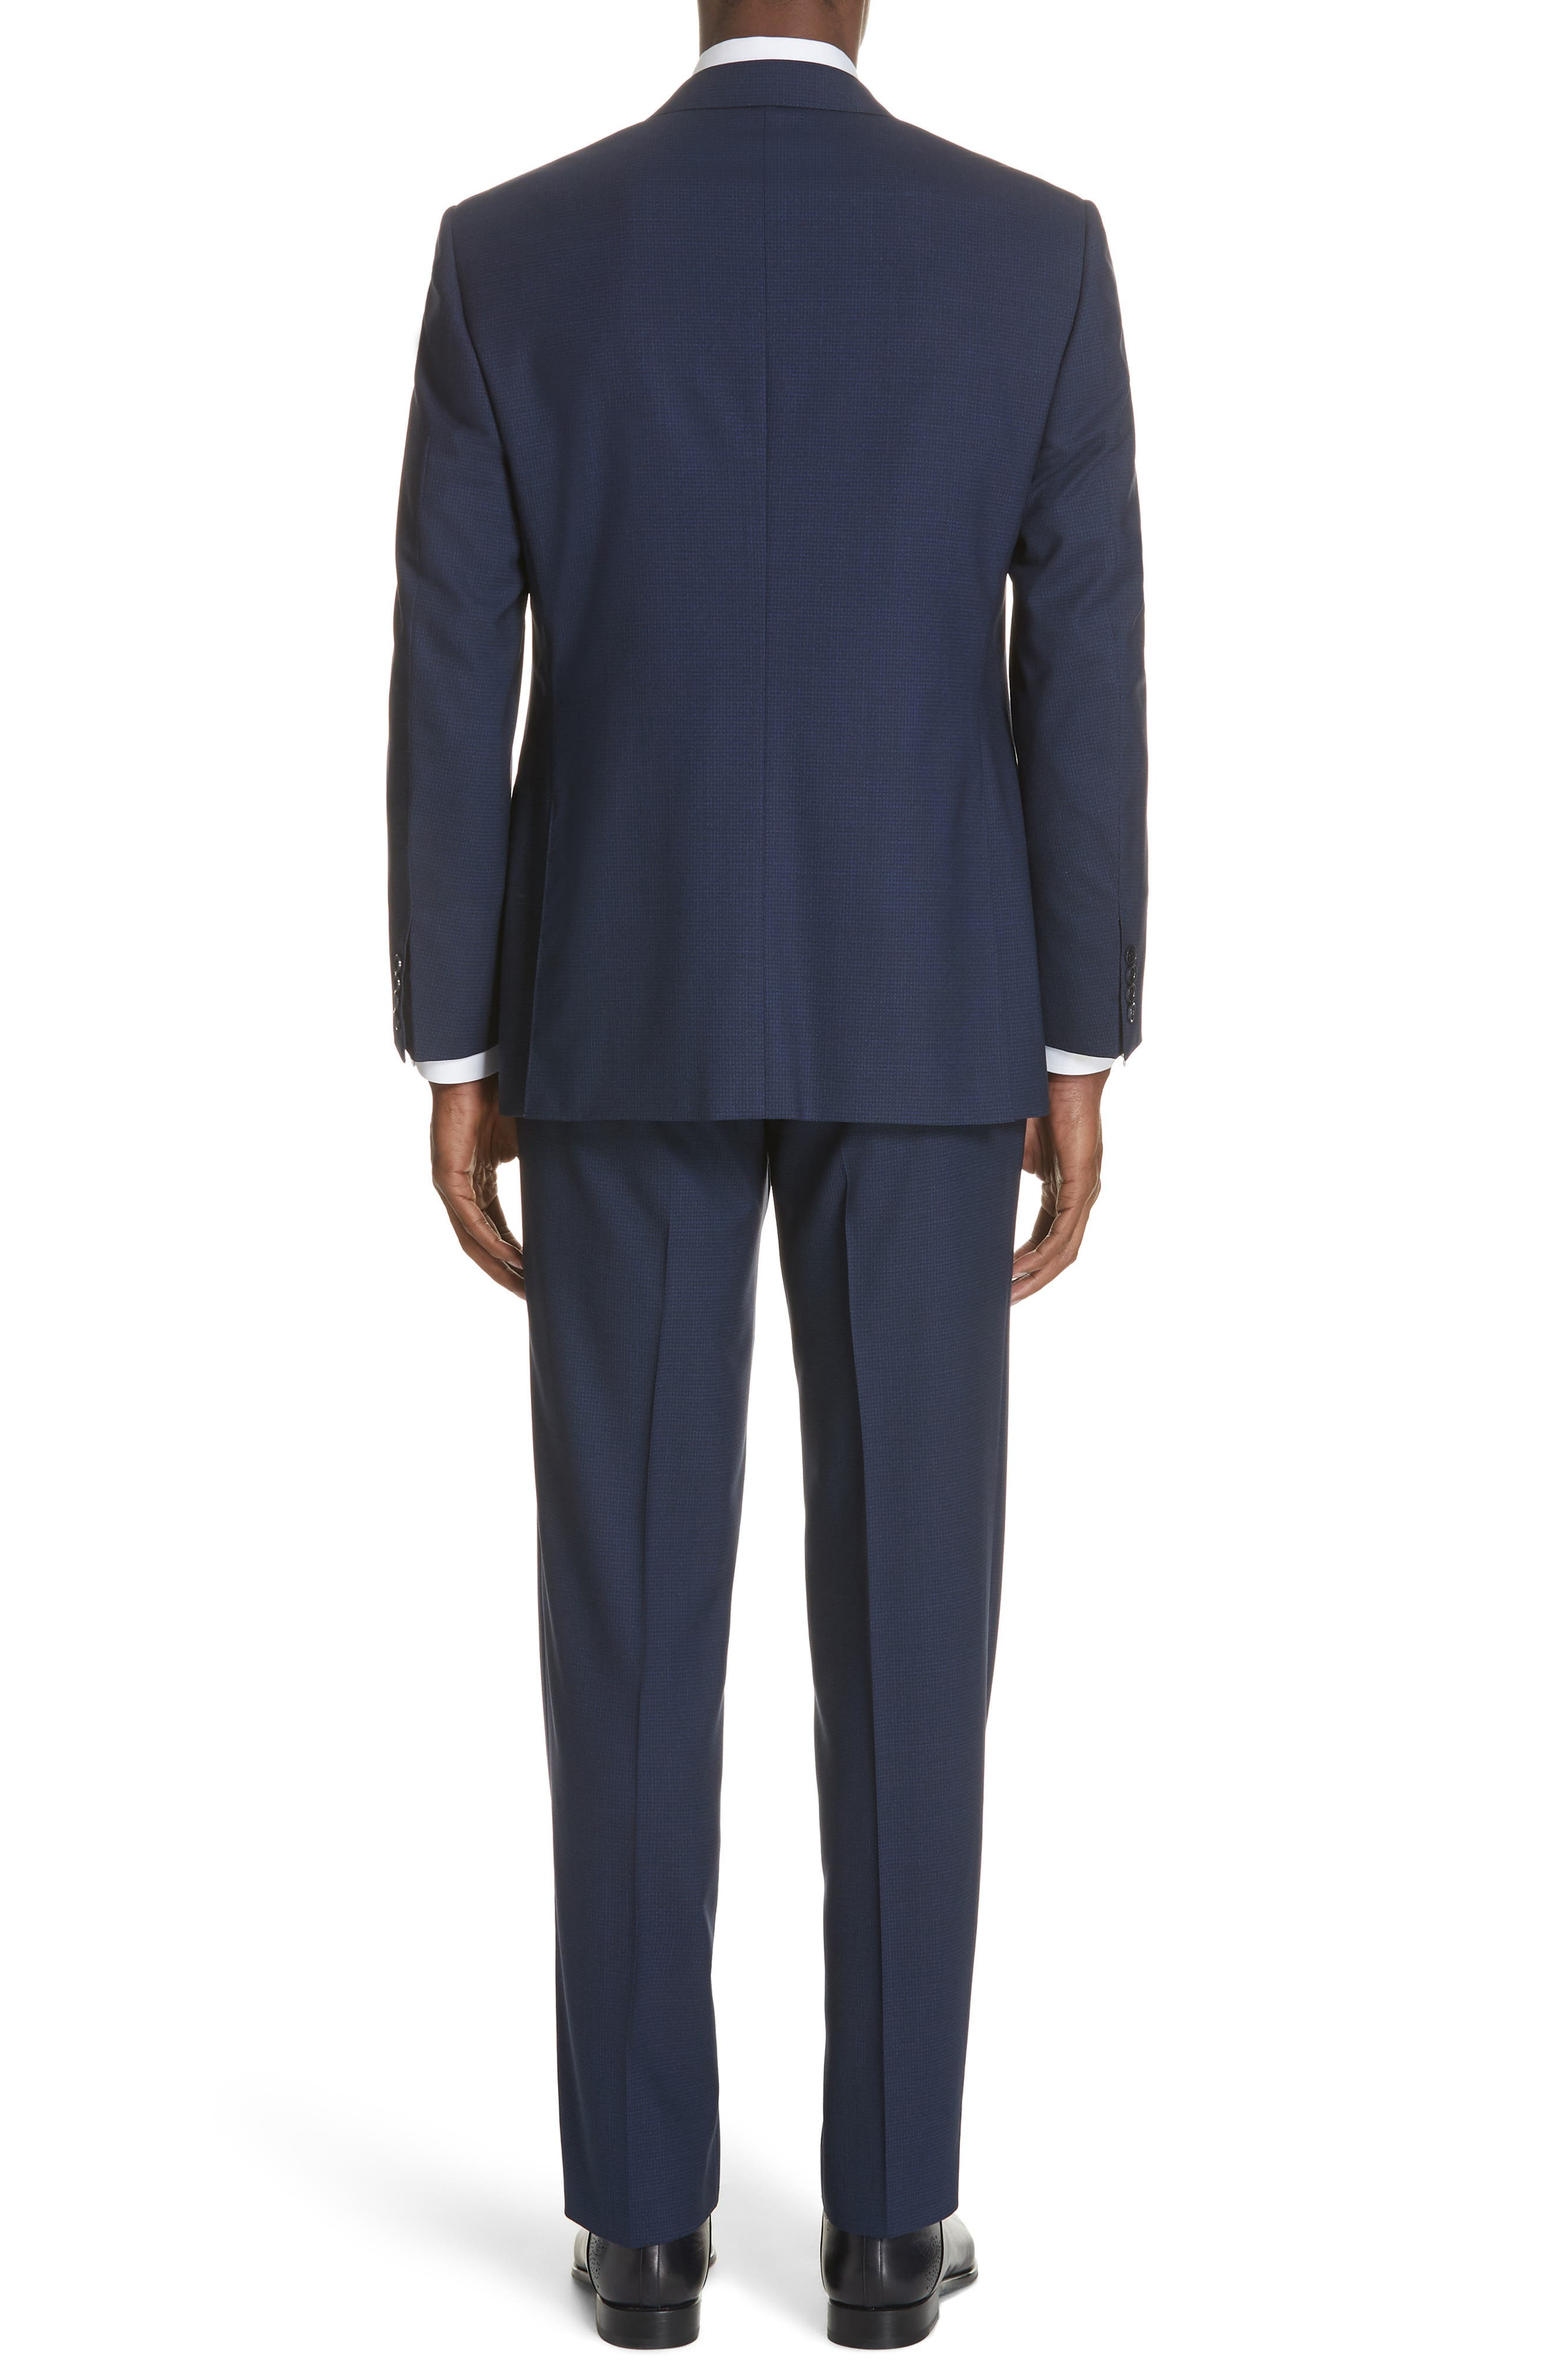 CANALI,                             Classic Fit Check Wool Suit,                             Alternate thumbnail 2, color,                             400